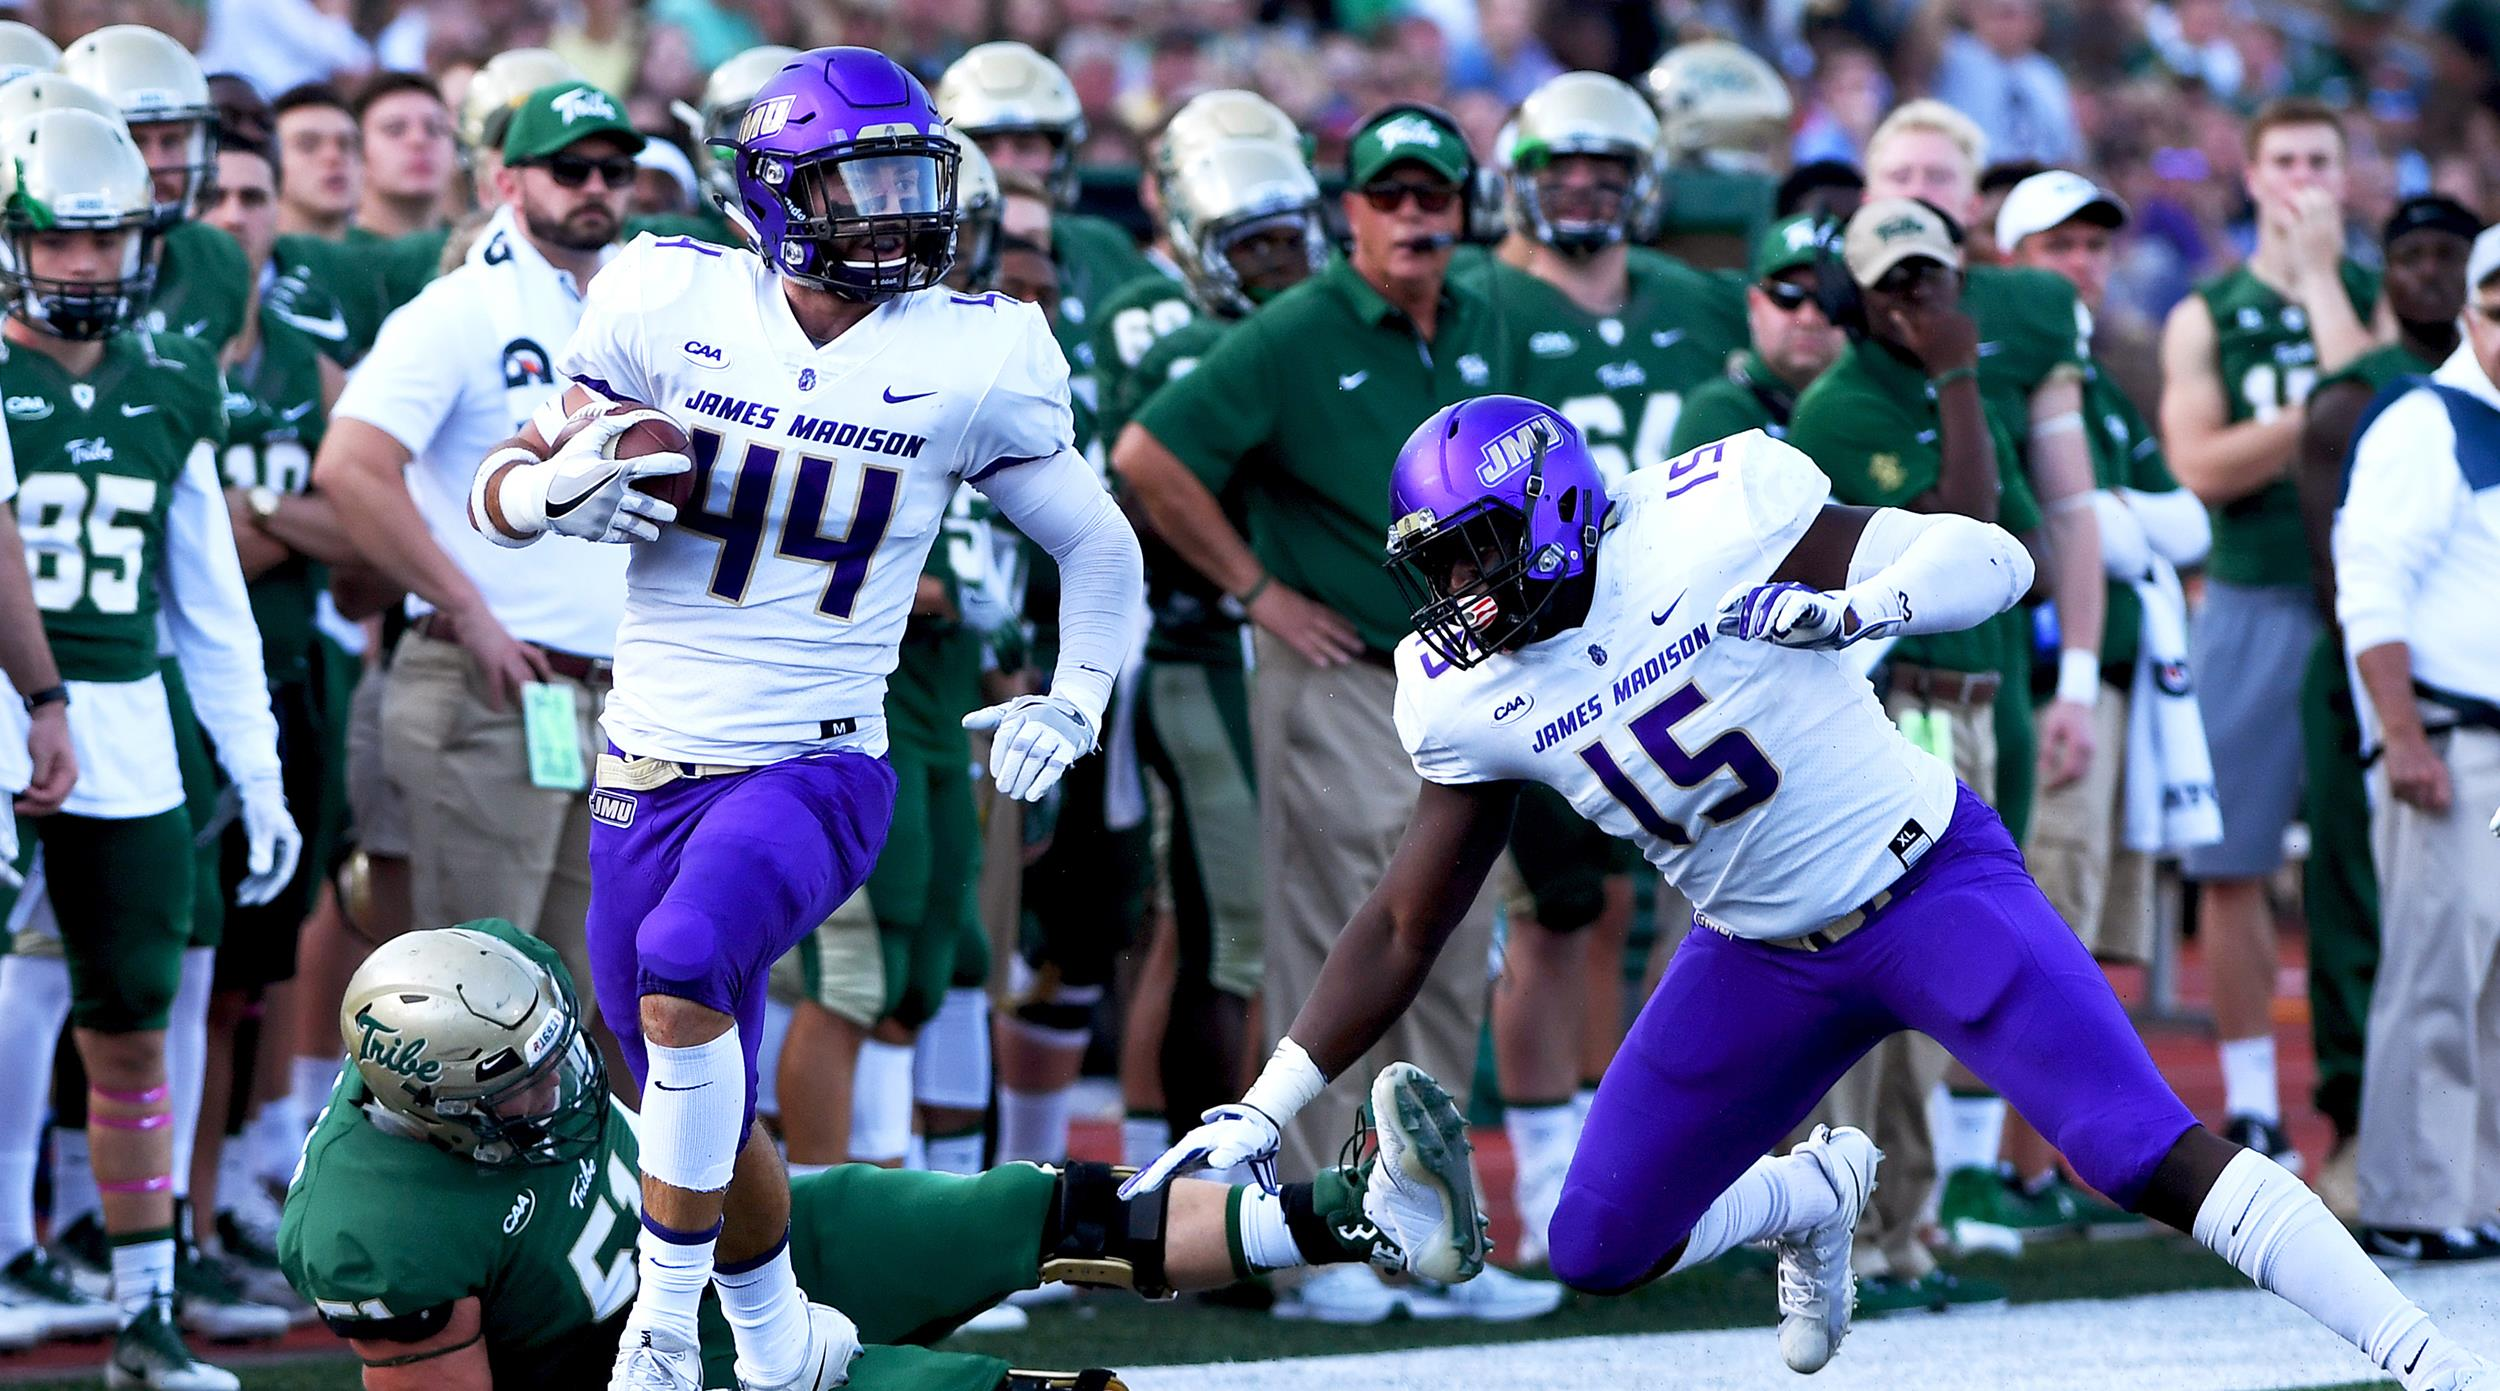 Football: Defense Equals Offense in #1 JMU's 46-14 Rout of William & Mary)